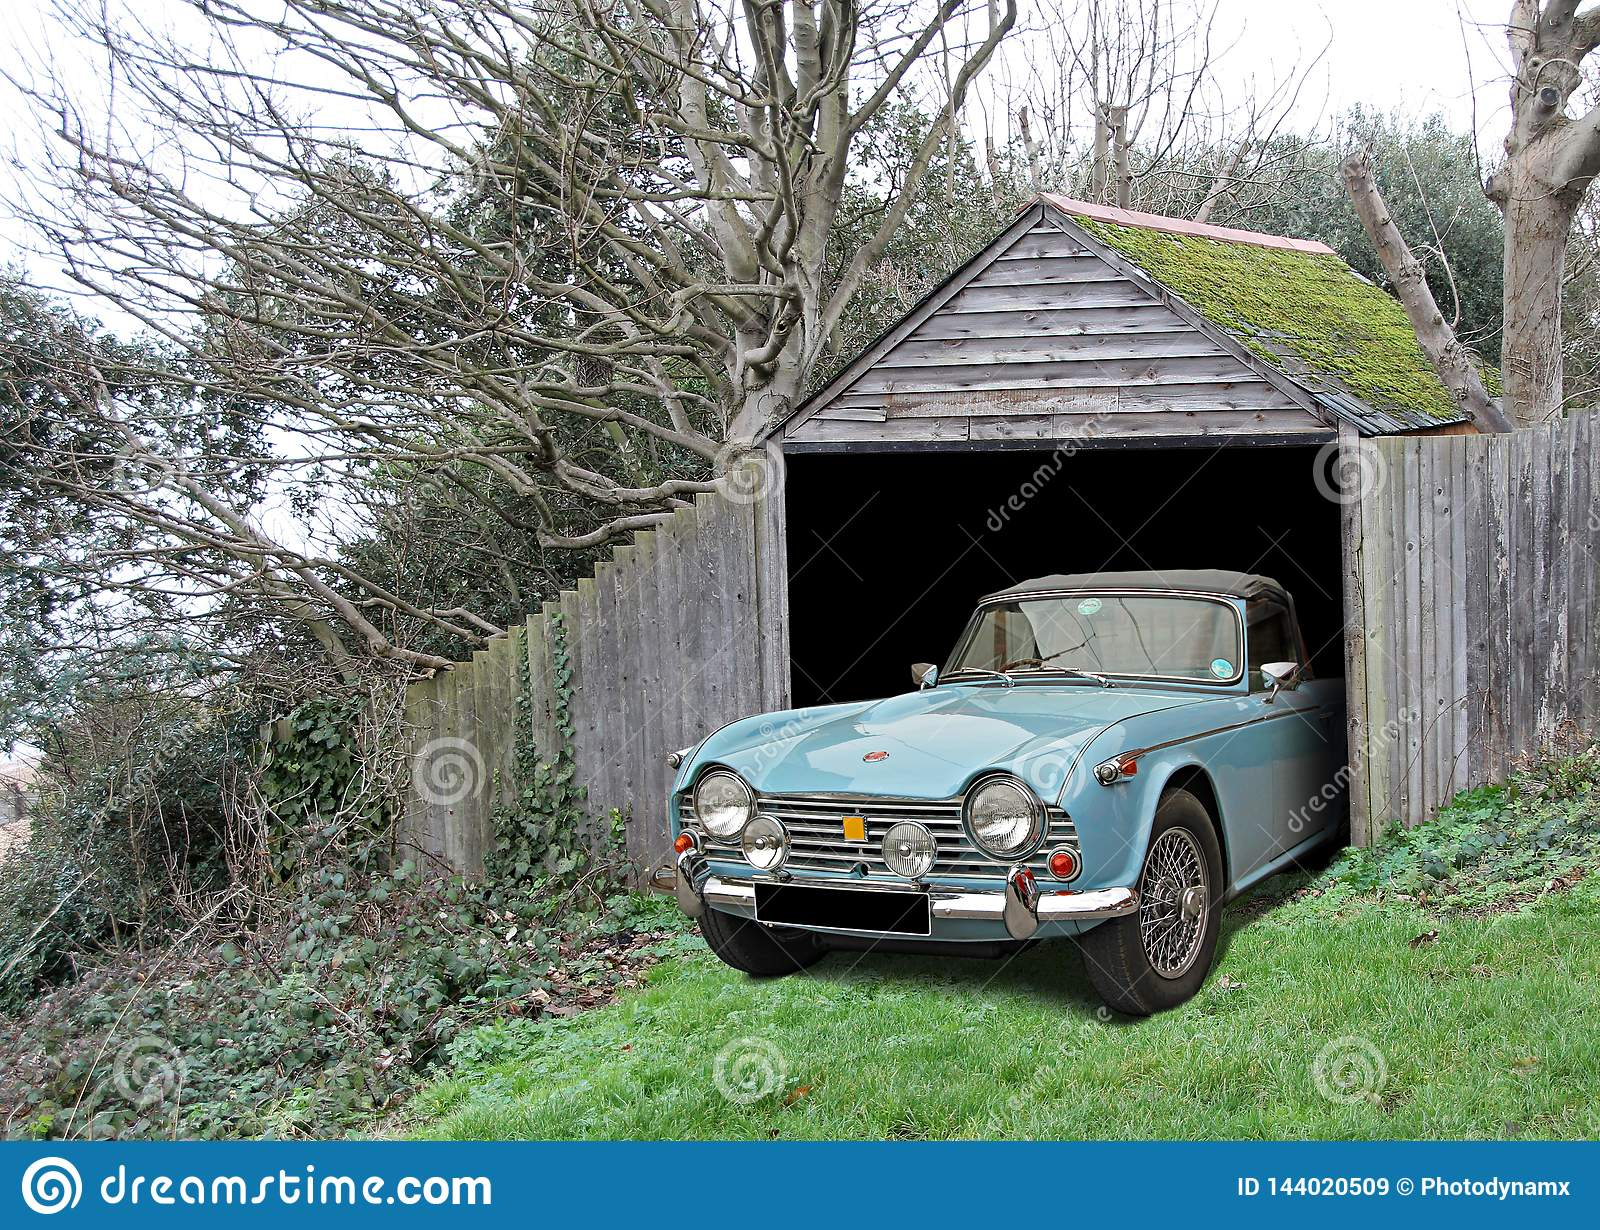 Vintage Car Triumph Tr4 Found In Derelict Abandoned Shed